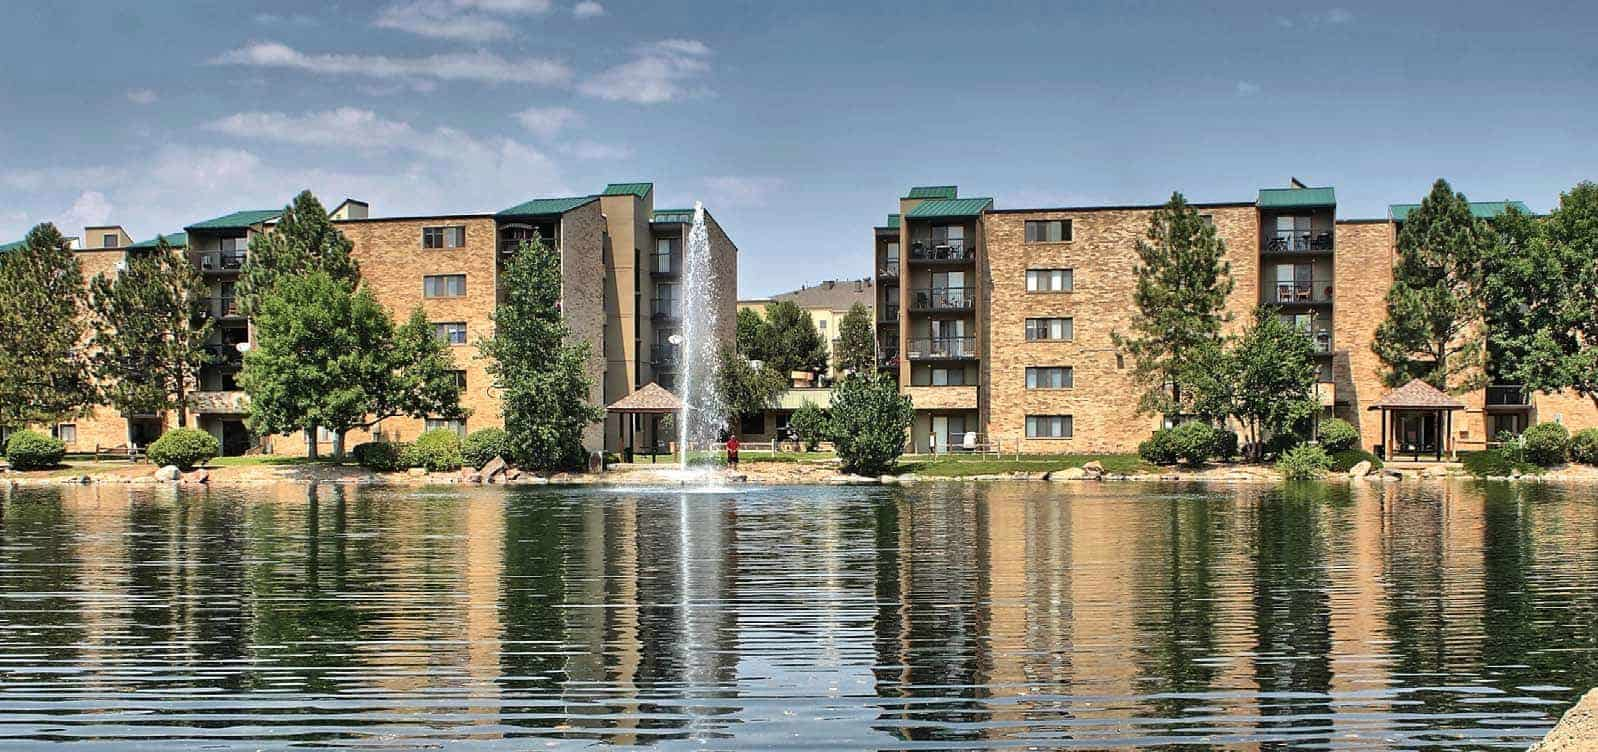 View of the lake and fountain with 5 story apartment buildings in the background.